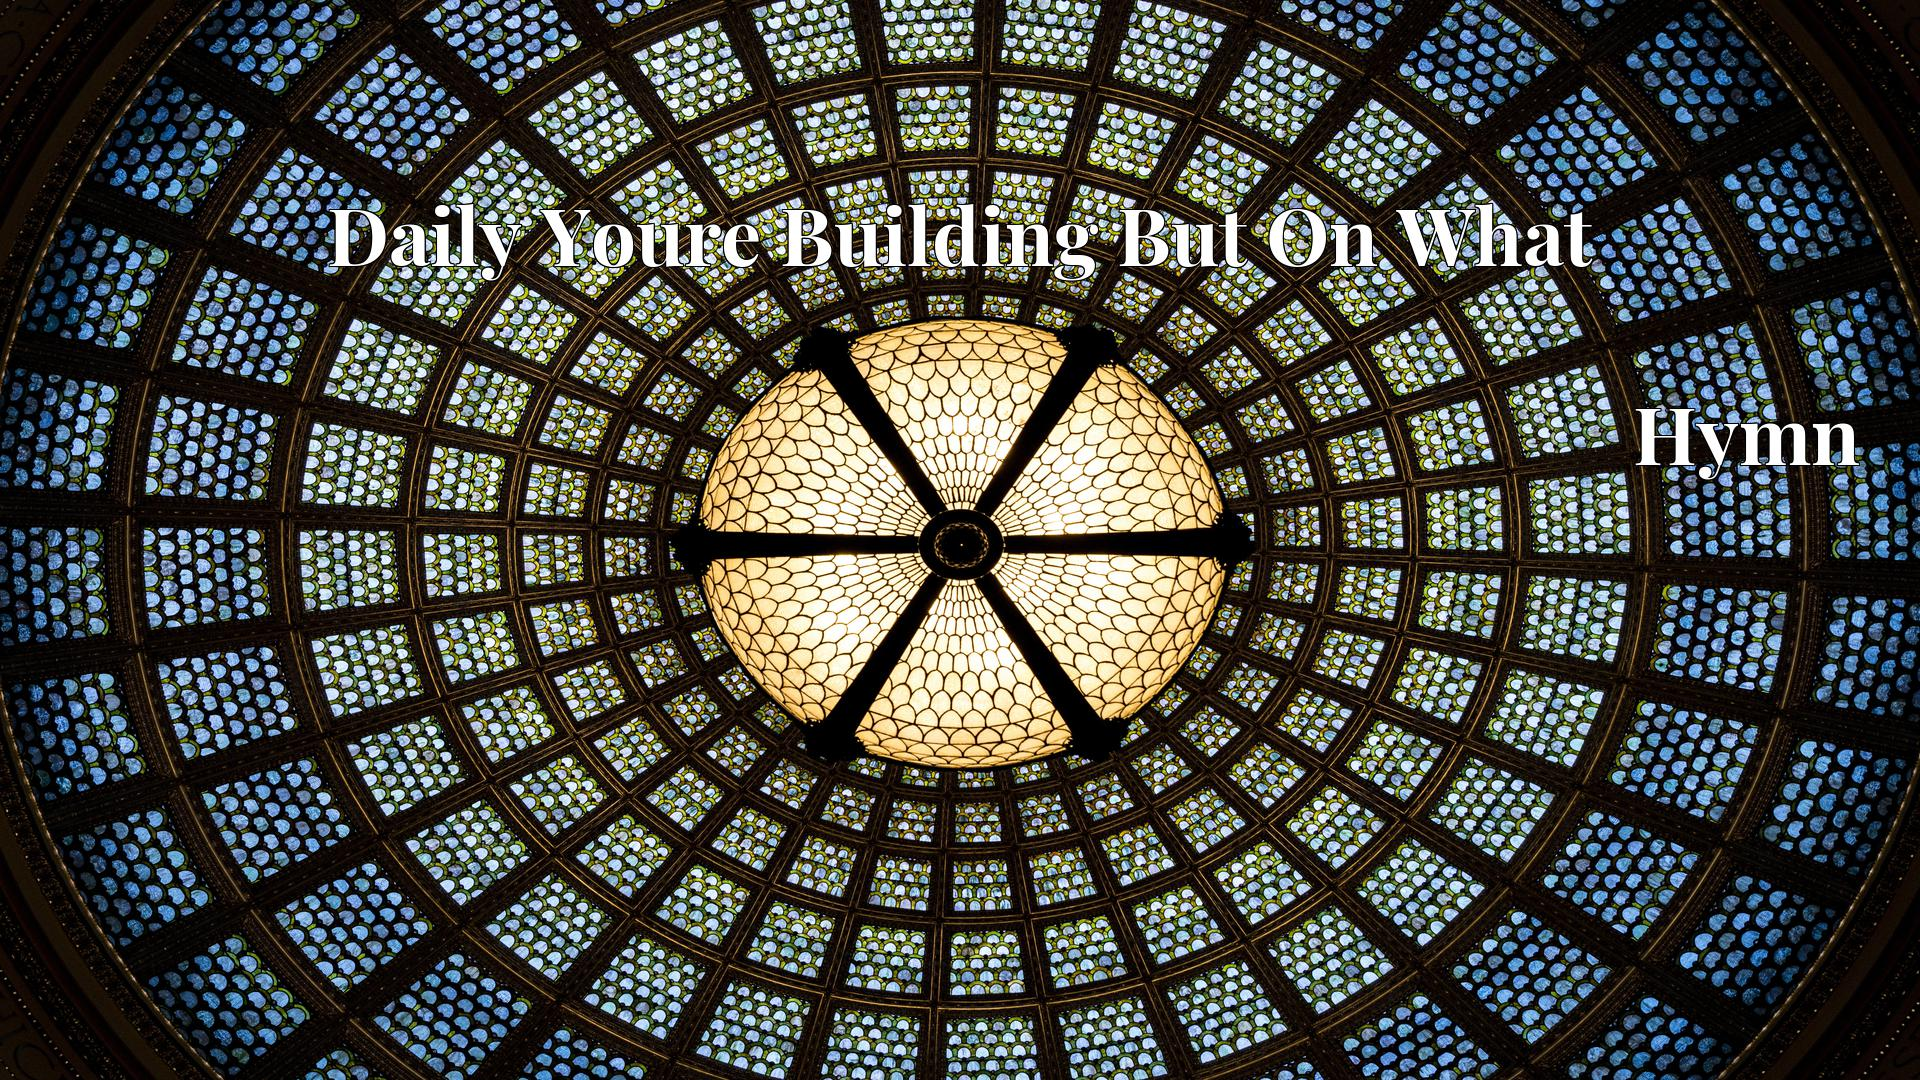 Daily Youre Building But On What - Hymn